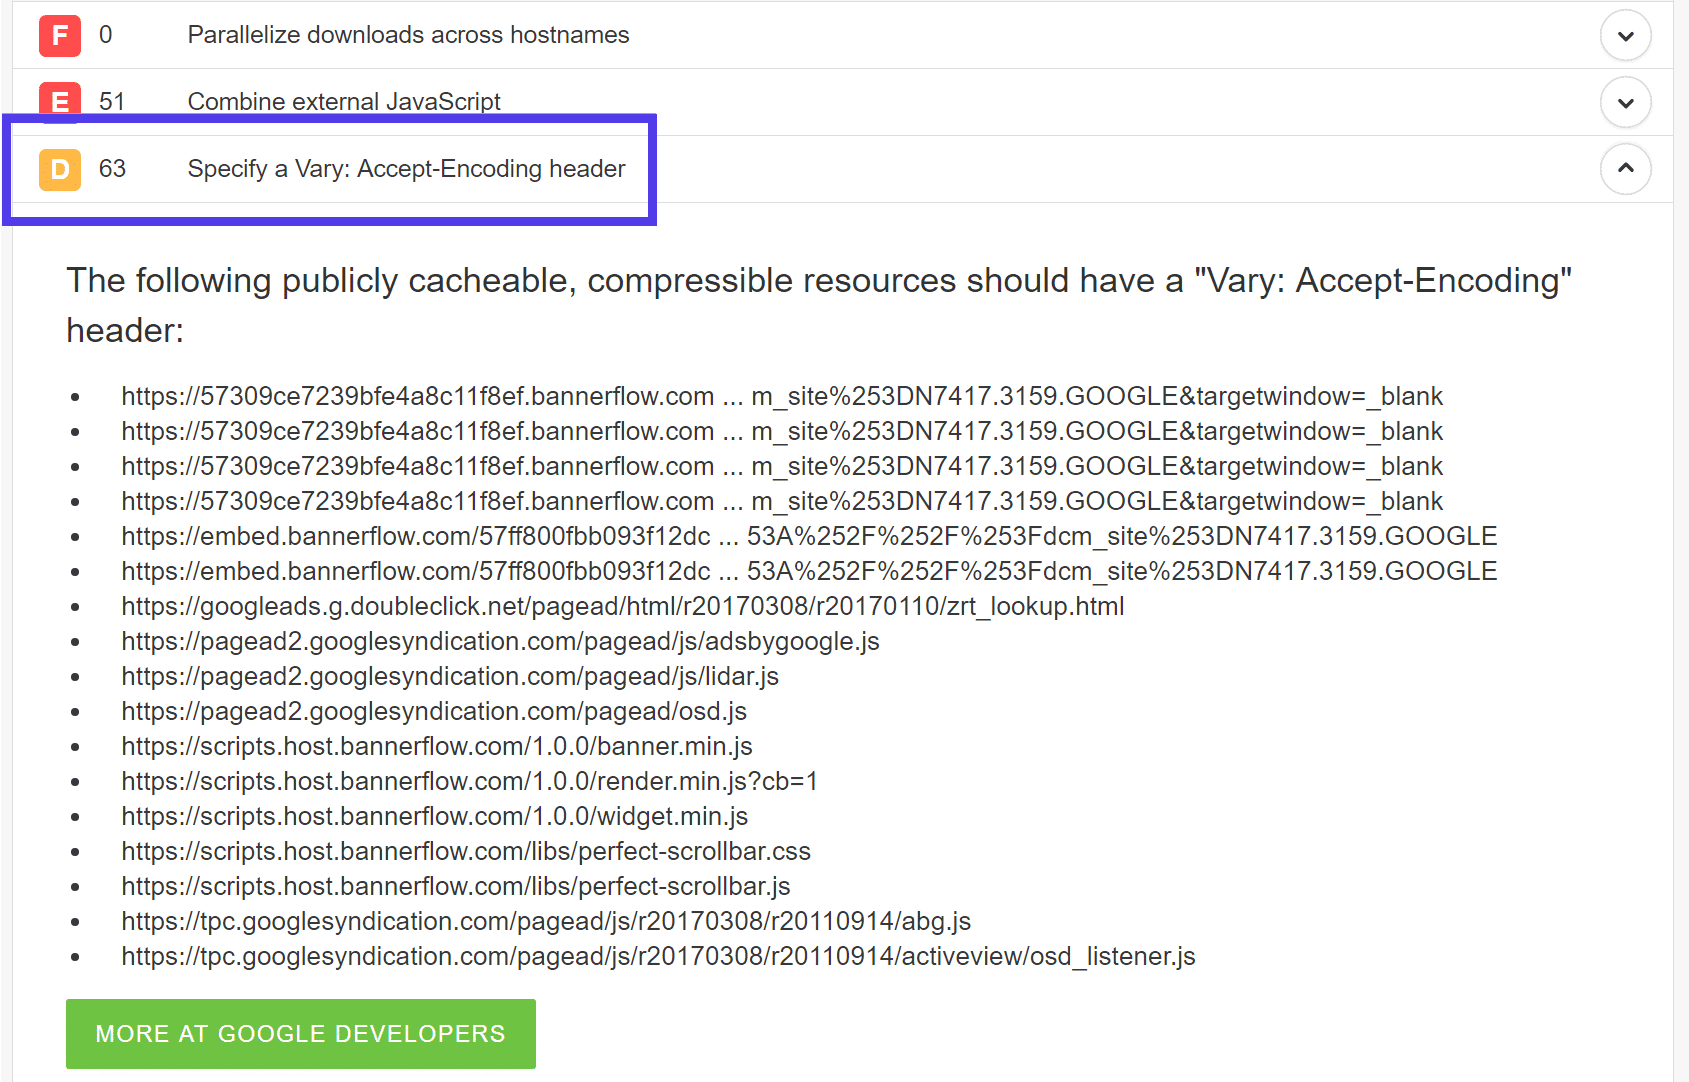 Specify a vary: accept-encoding header warning